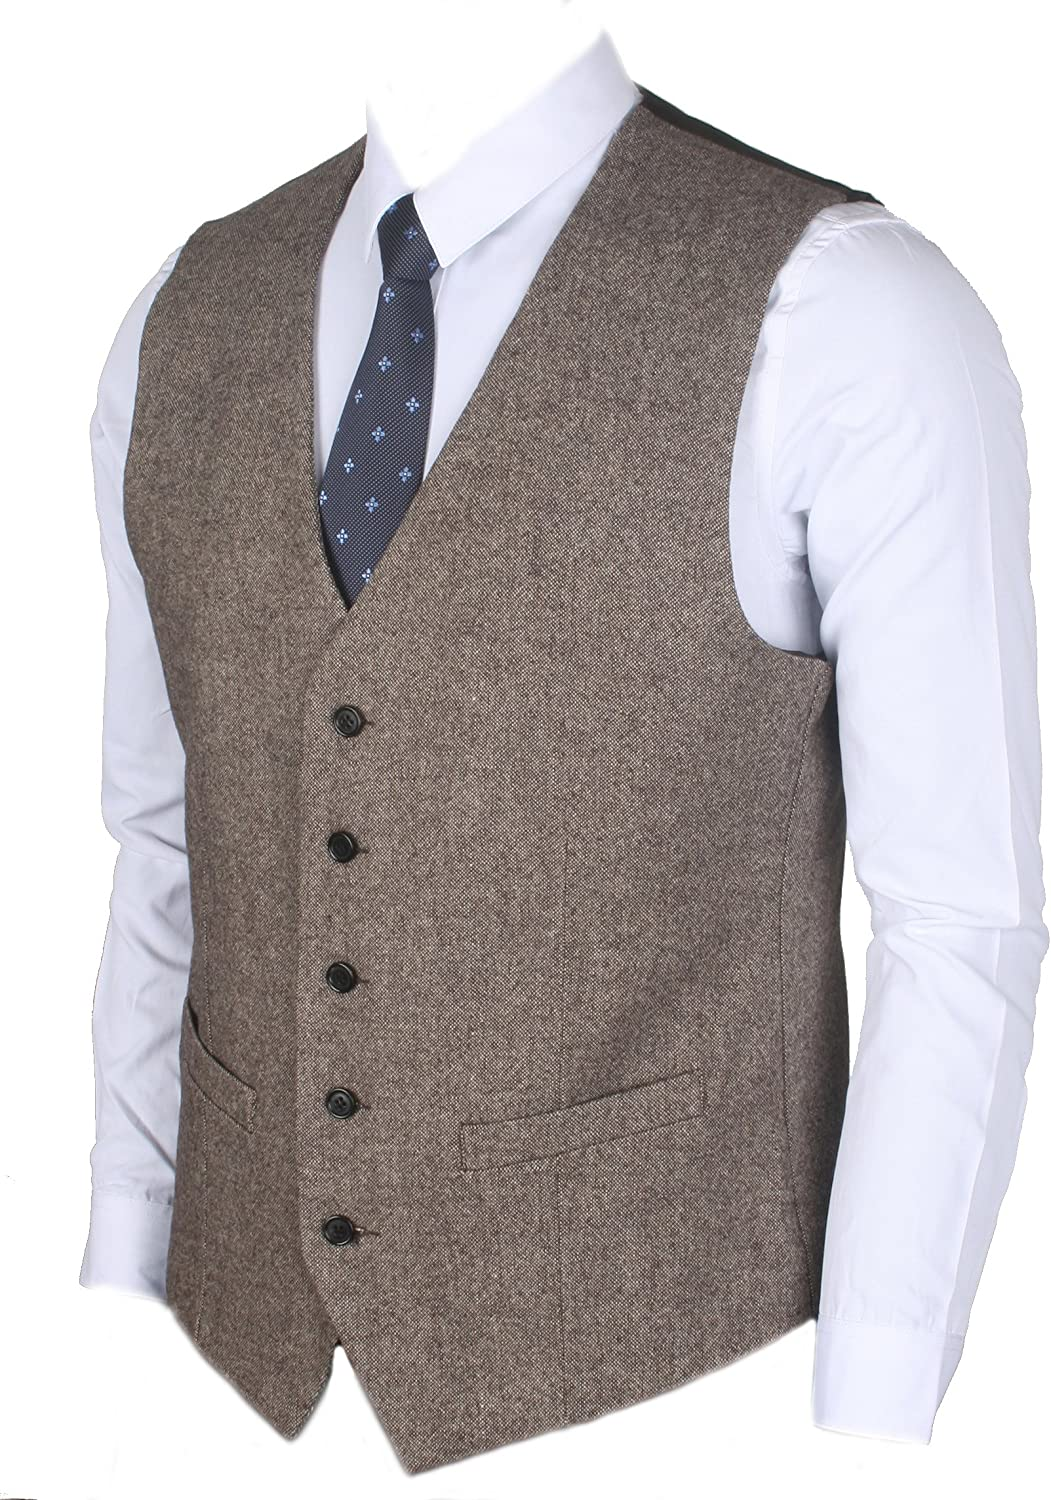 1920s Style Mens Vests Ruth&Boaz 2Pockets 5Buttons Wool Herringbone/Tweed Tailored Collar Suit Waistcoat £29.90 AT vintagedancer.com